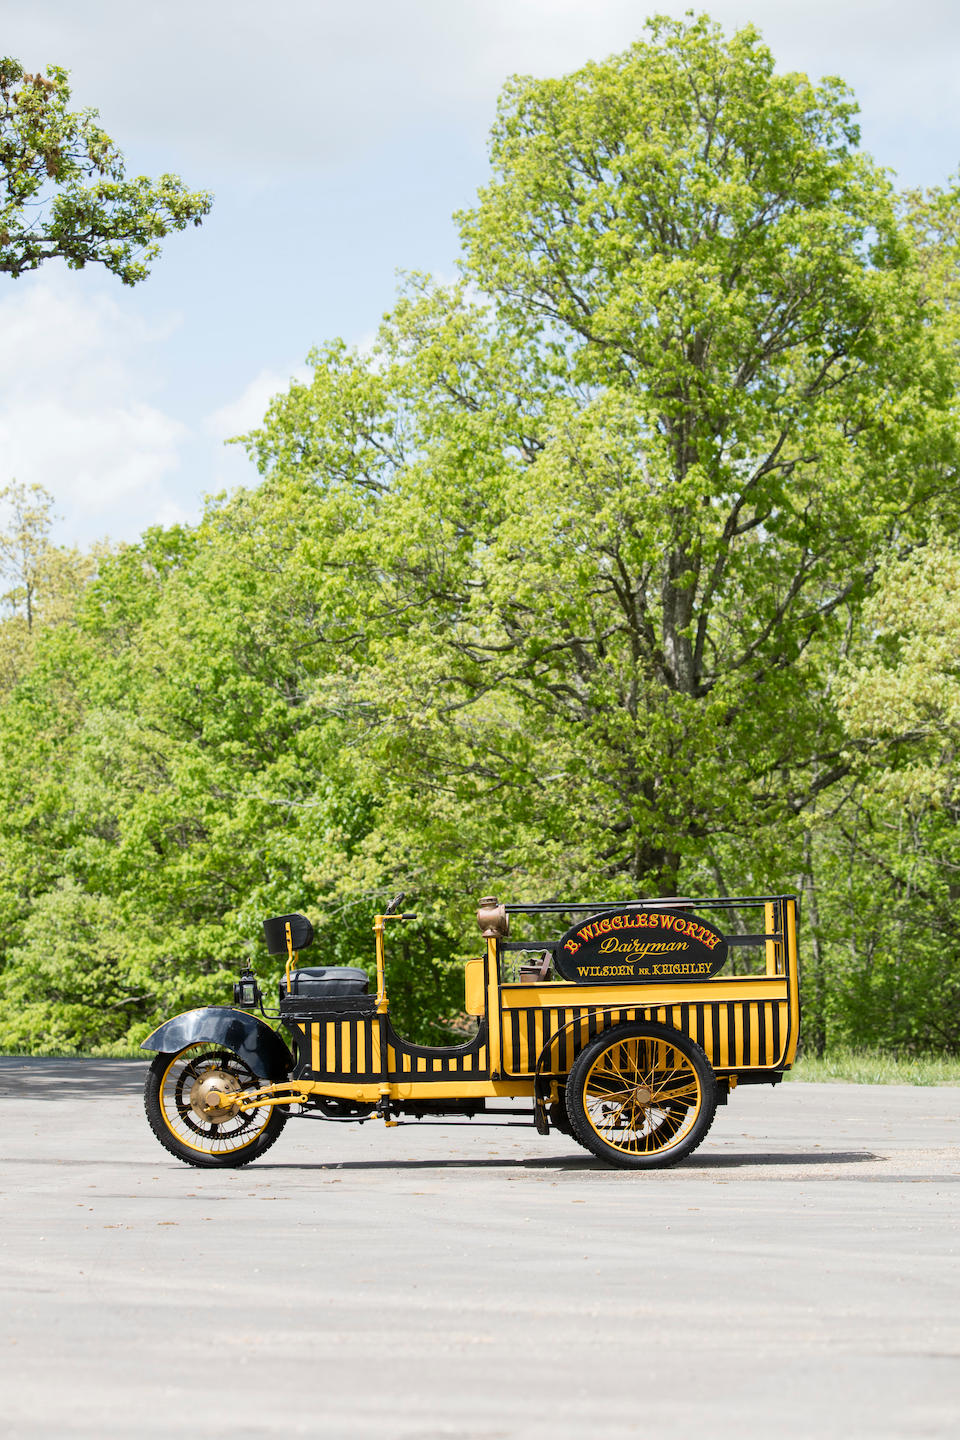 <B>1914 WARRICK 6hp TRI-CAR MOTOR CARRIER<br /></B><BR />Chassis no. 641<BR />Engine no. 641